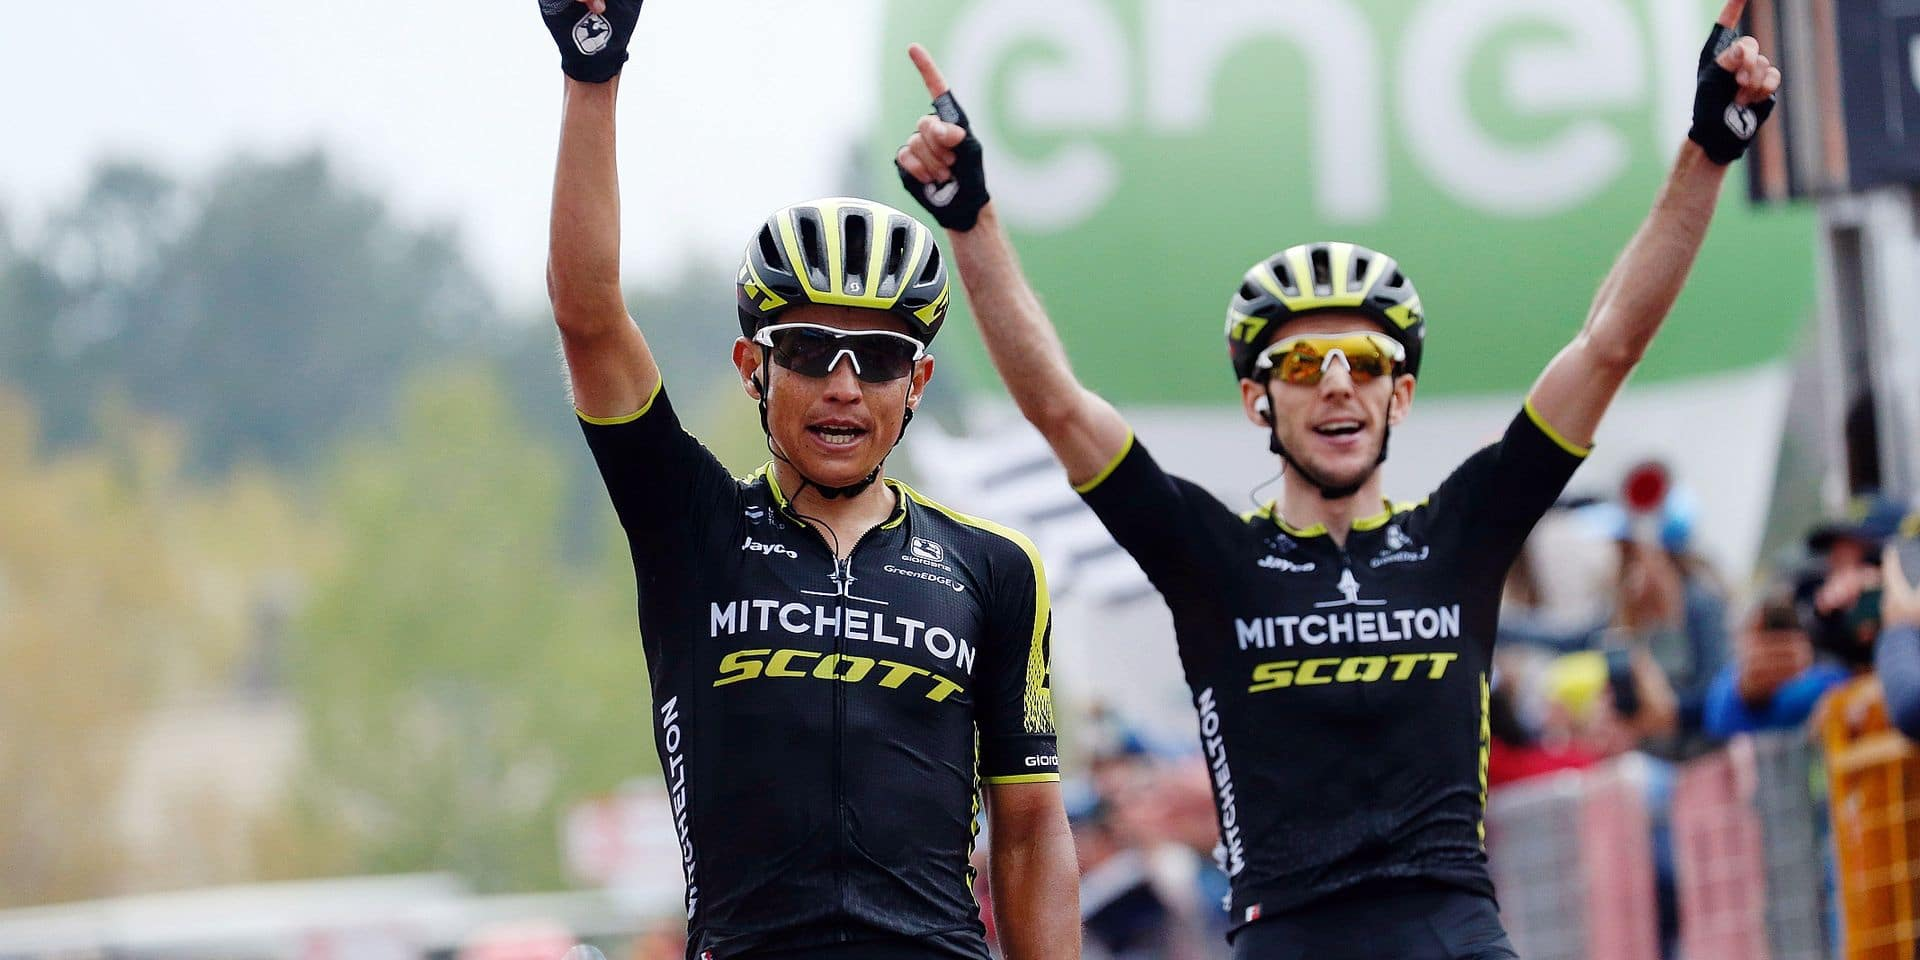 Colombian Esteban Chaves of Mitchelton - Scott and Britain's Simon Yates of Mitchelton - Scott celebrates after stage 6 of the 101st edition of the Giro D'Italia cycling tour, 164km from Caltanissetta to Etna, Italy, Thursday 10 May 2018. BELGA PHOTO YUZURU SUNADA FRANCE OUT